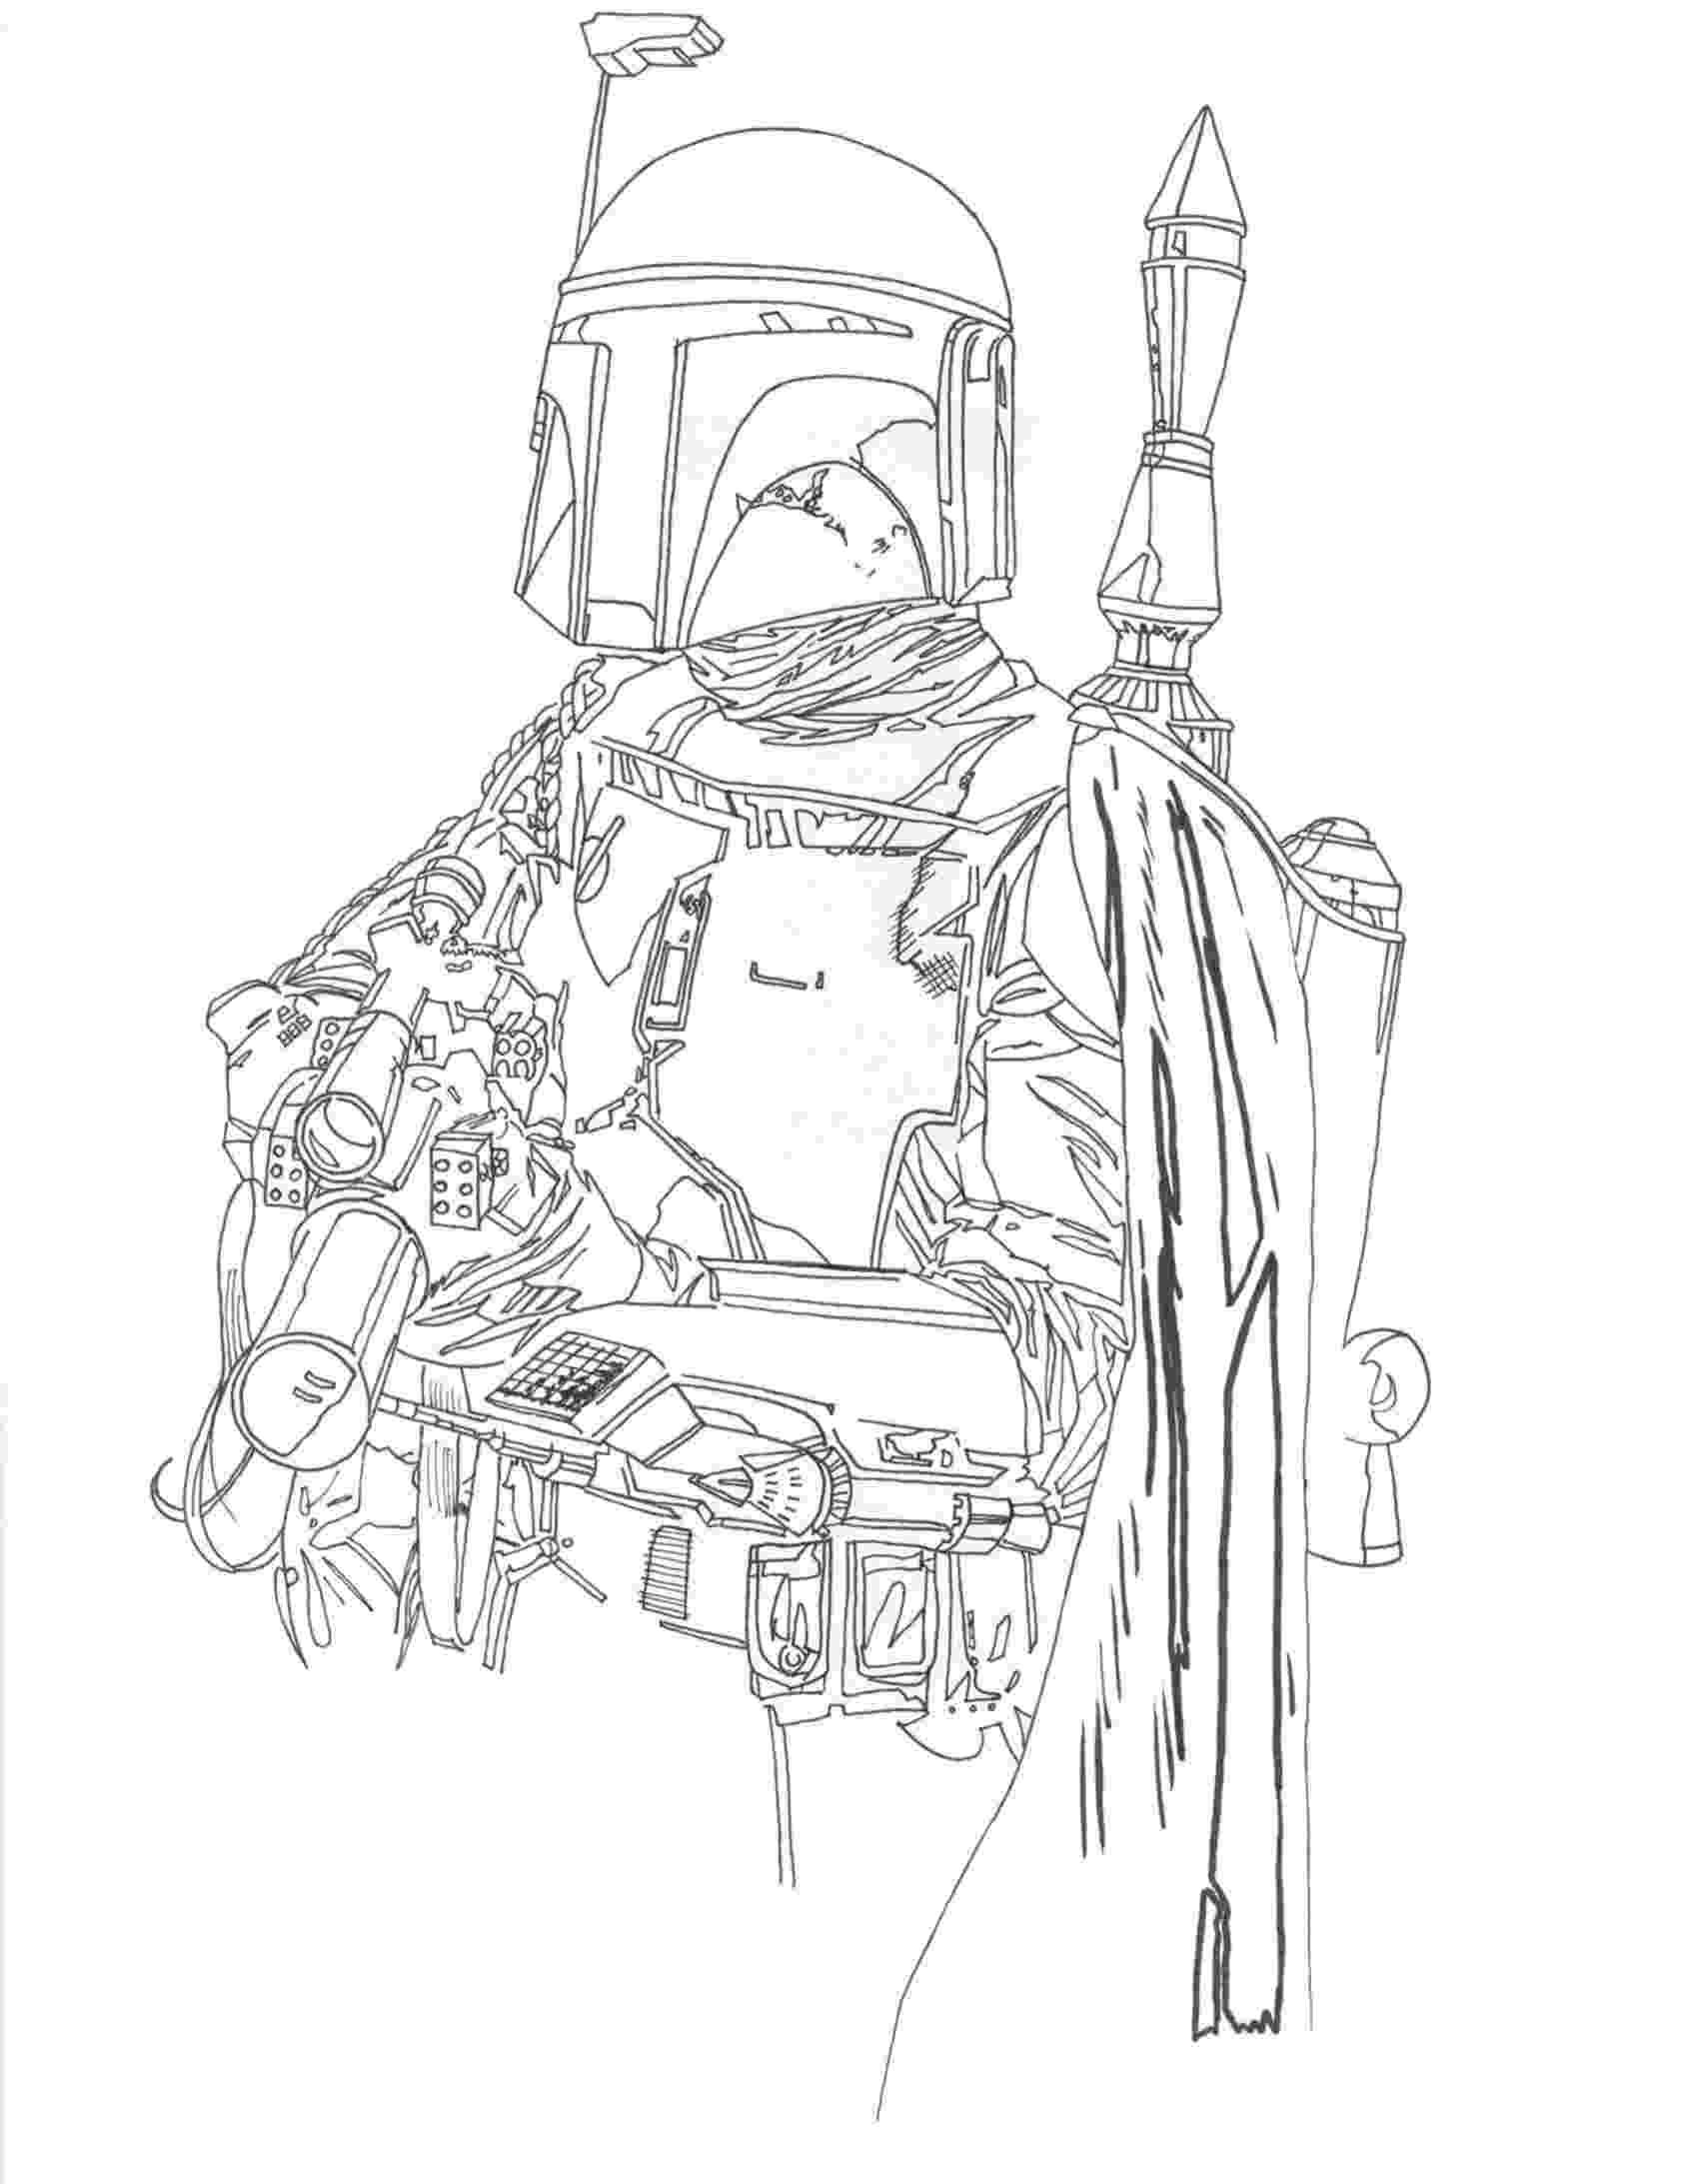 the clone wars coloring pages clone wars coloring pages coloringkidsorg coloring kids pages coloring wars the clone